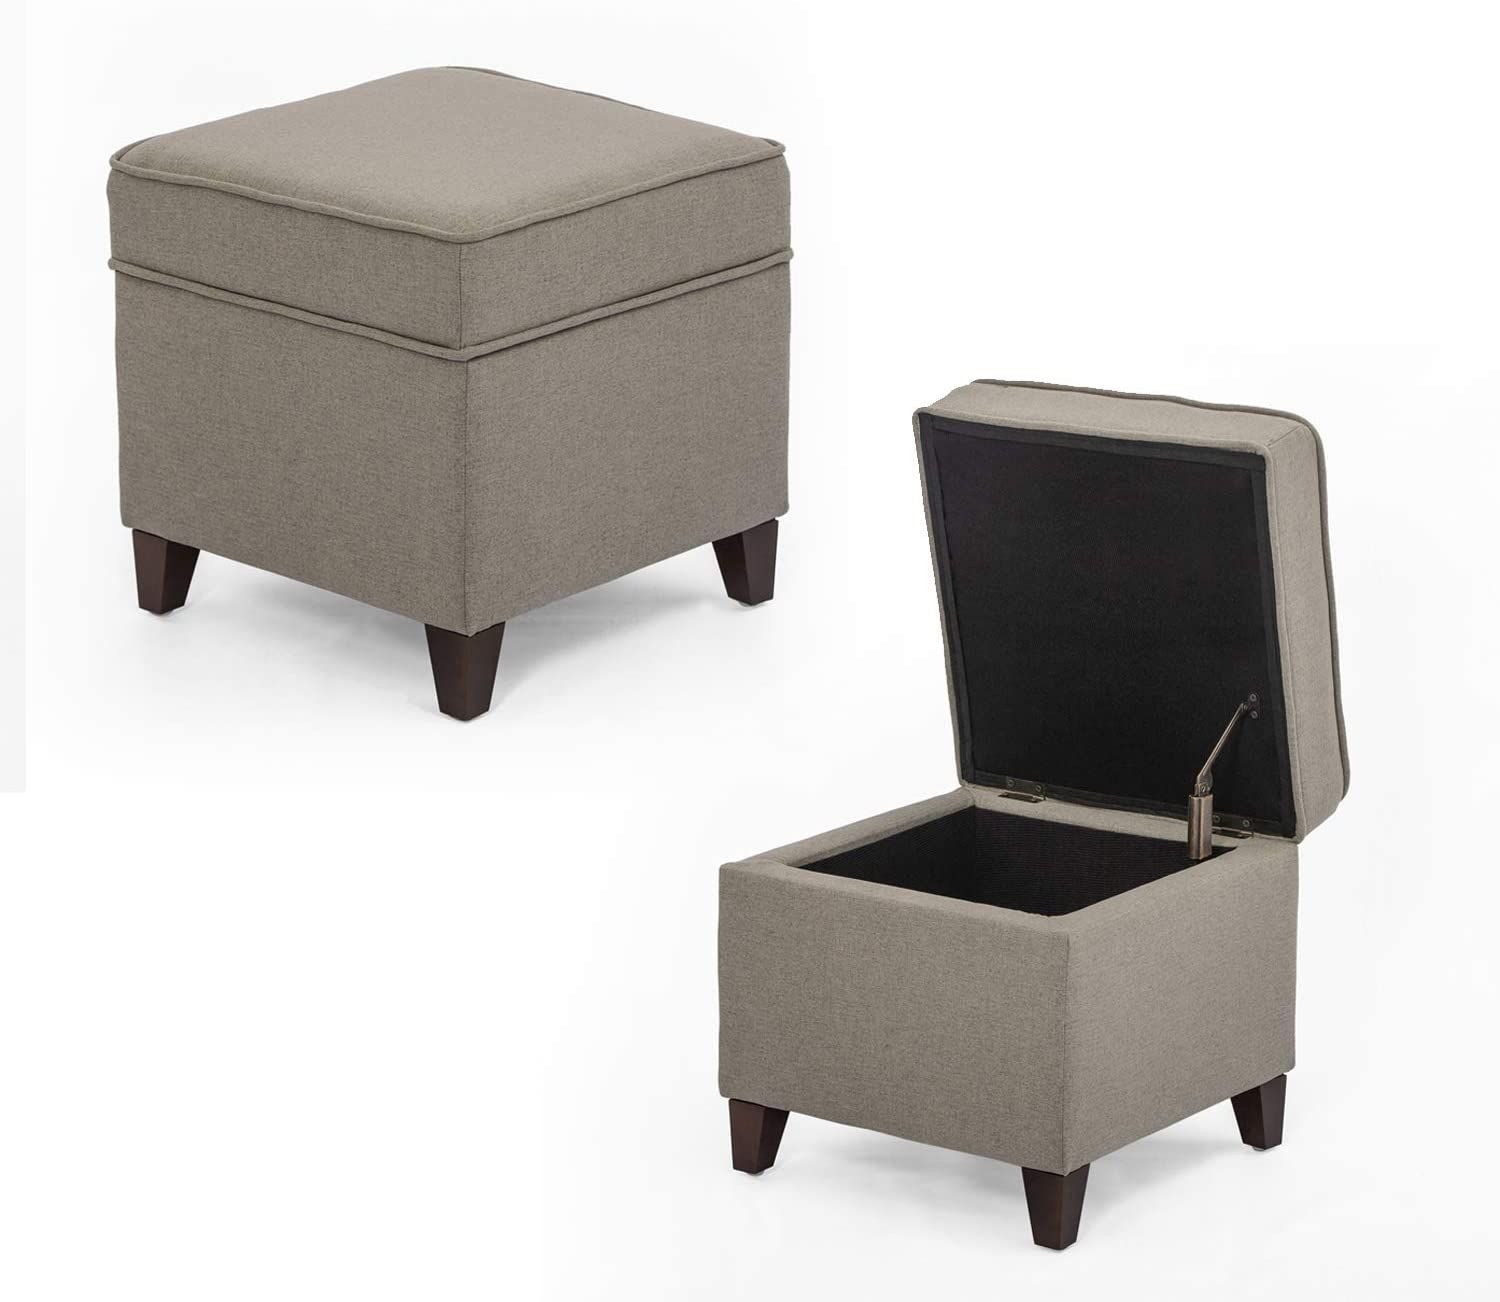 Adeco Fabric Ottoman With Storage Chest And Footrest Square Seat 18x18x15 Light Brown Home Square Storage Ottoman Storage Ottoman Storage Cube Ottoman [ jpg ]